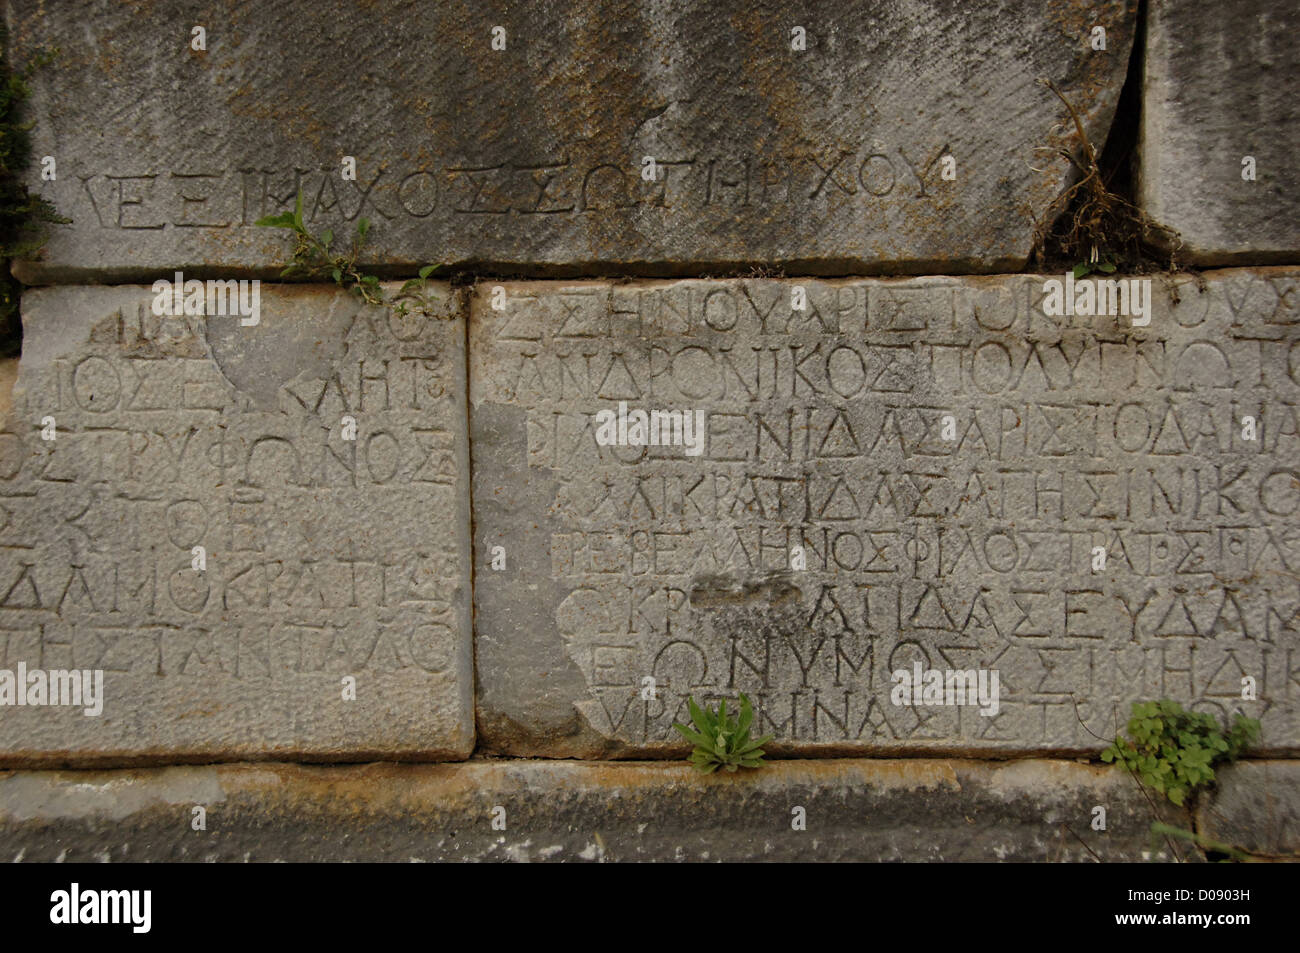 Greece. Sparta. Inscription on the stone. Greek writing. Old Theater. Peloponnese. - Stock Image